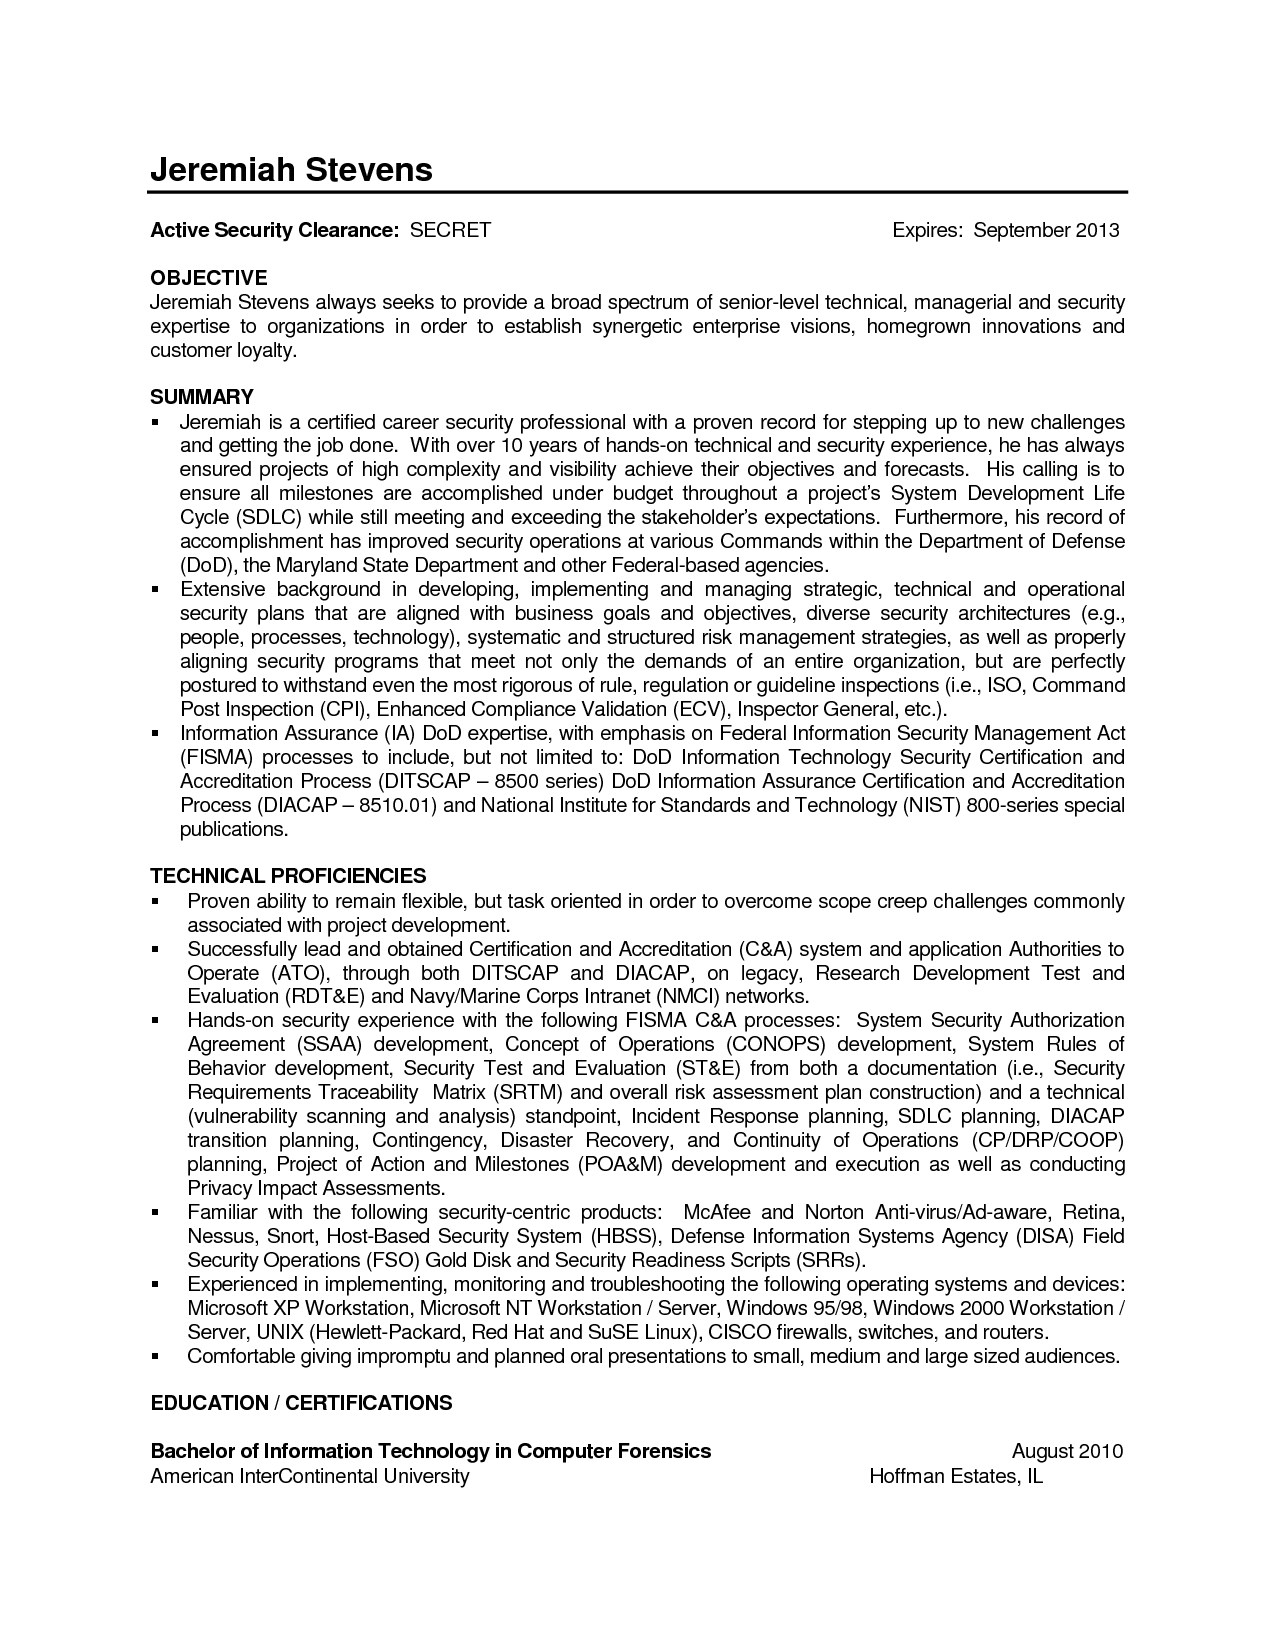 Information Technology Resume For Federal Job